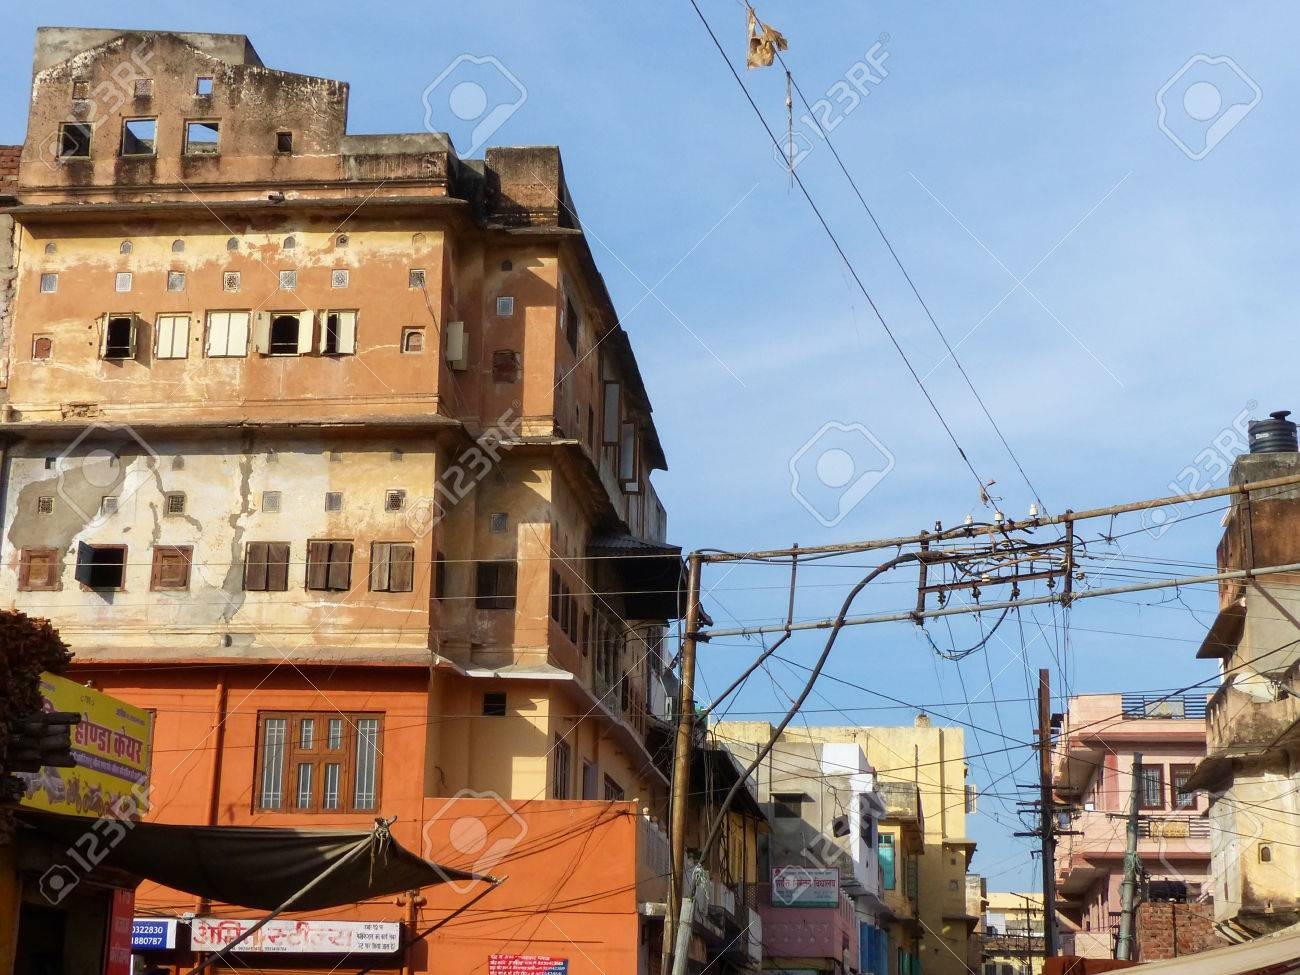 Typical Electrical Wiring In The Streets Of Jaipur Rajasthan